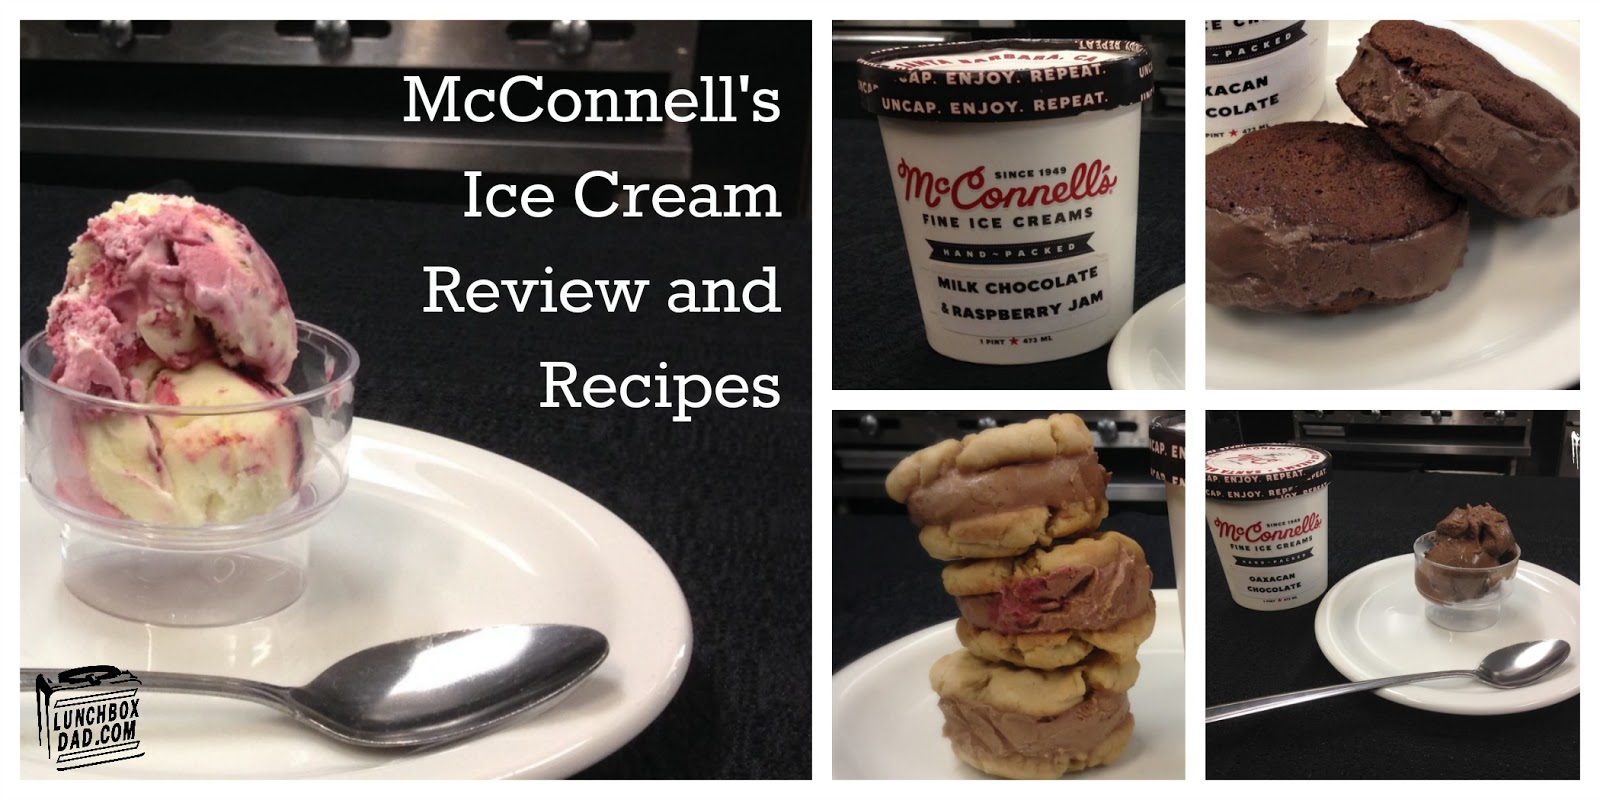 McConnell's Ice Cream Review